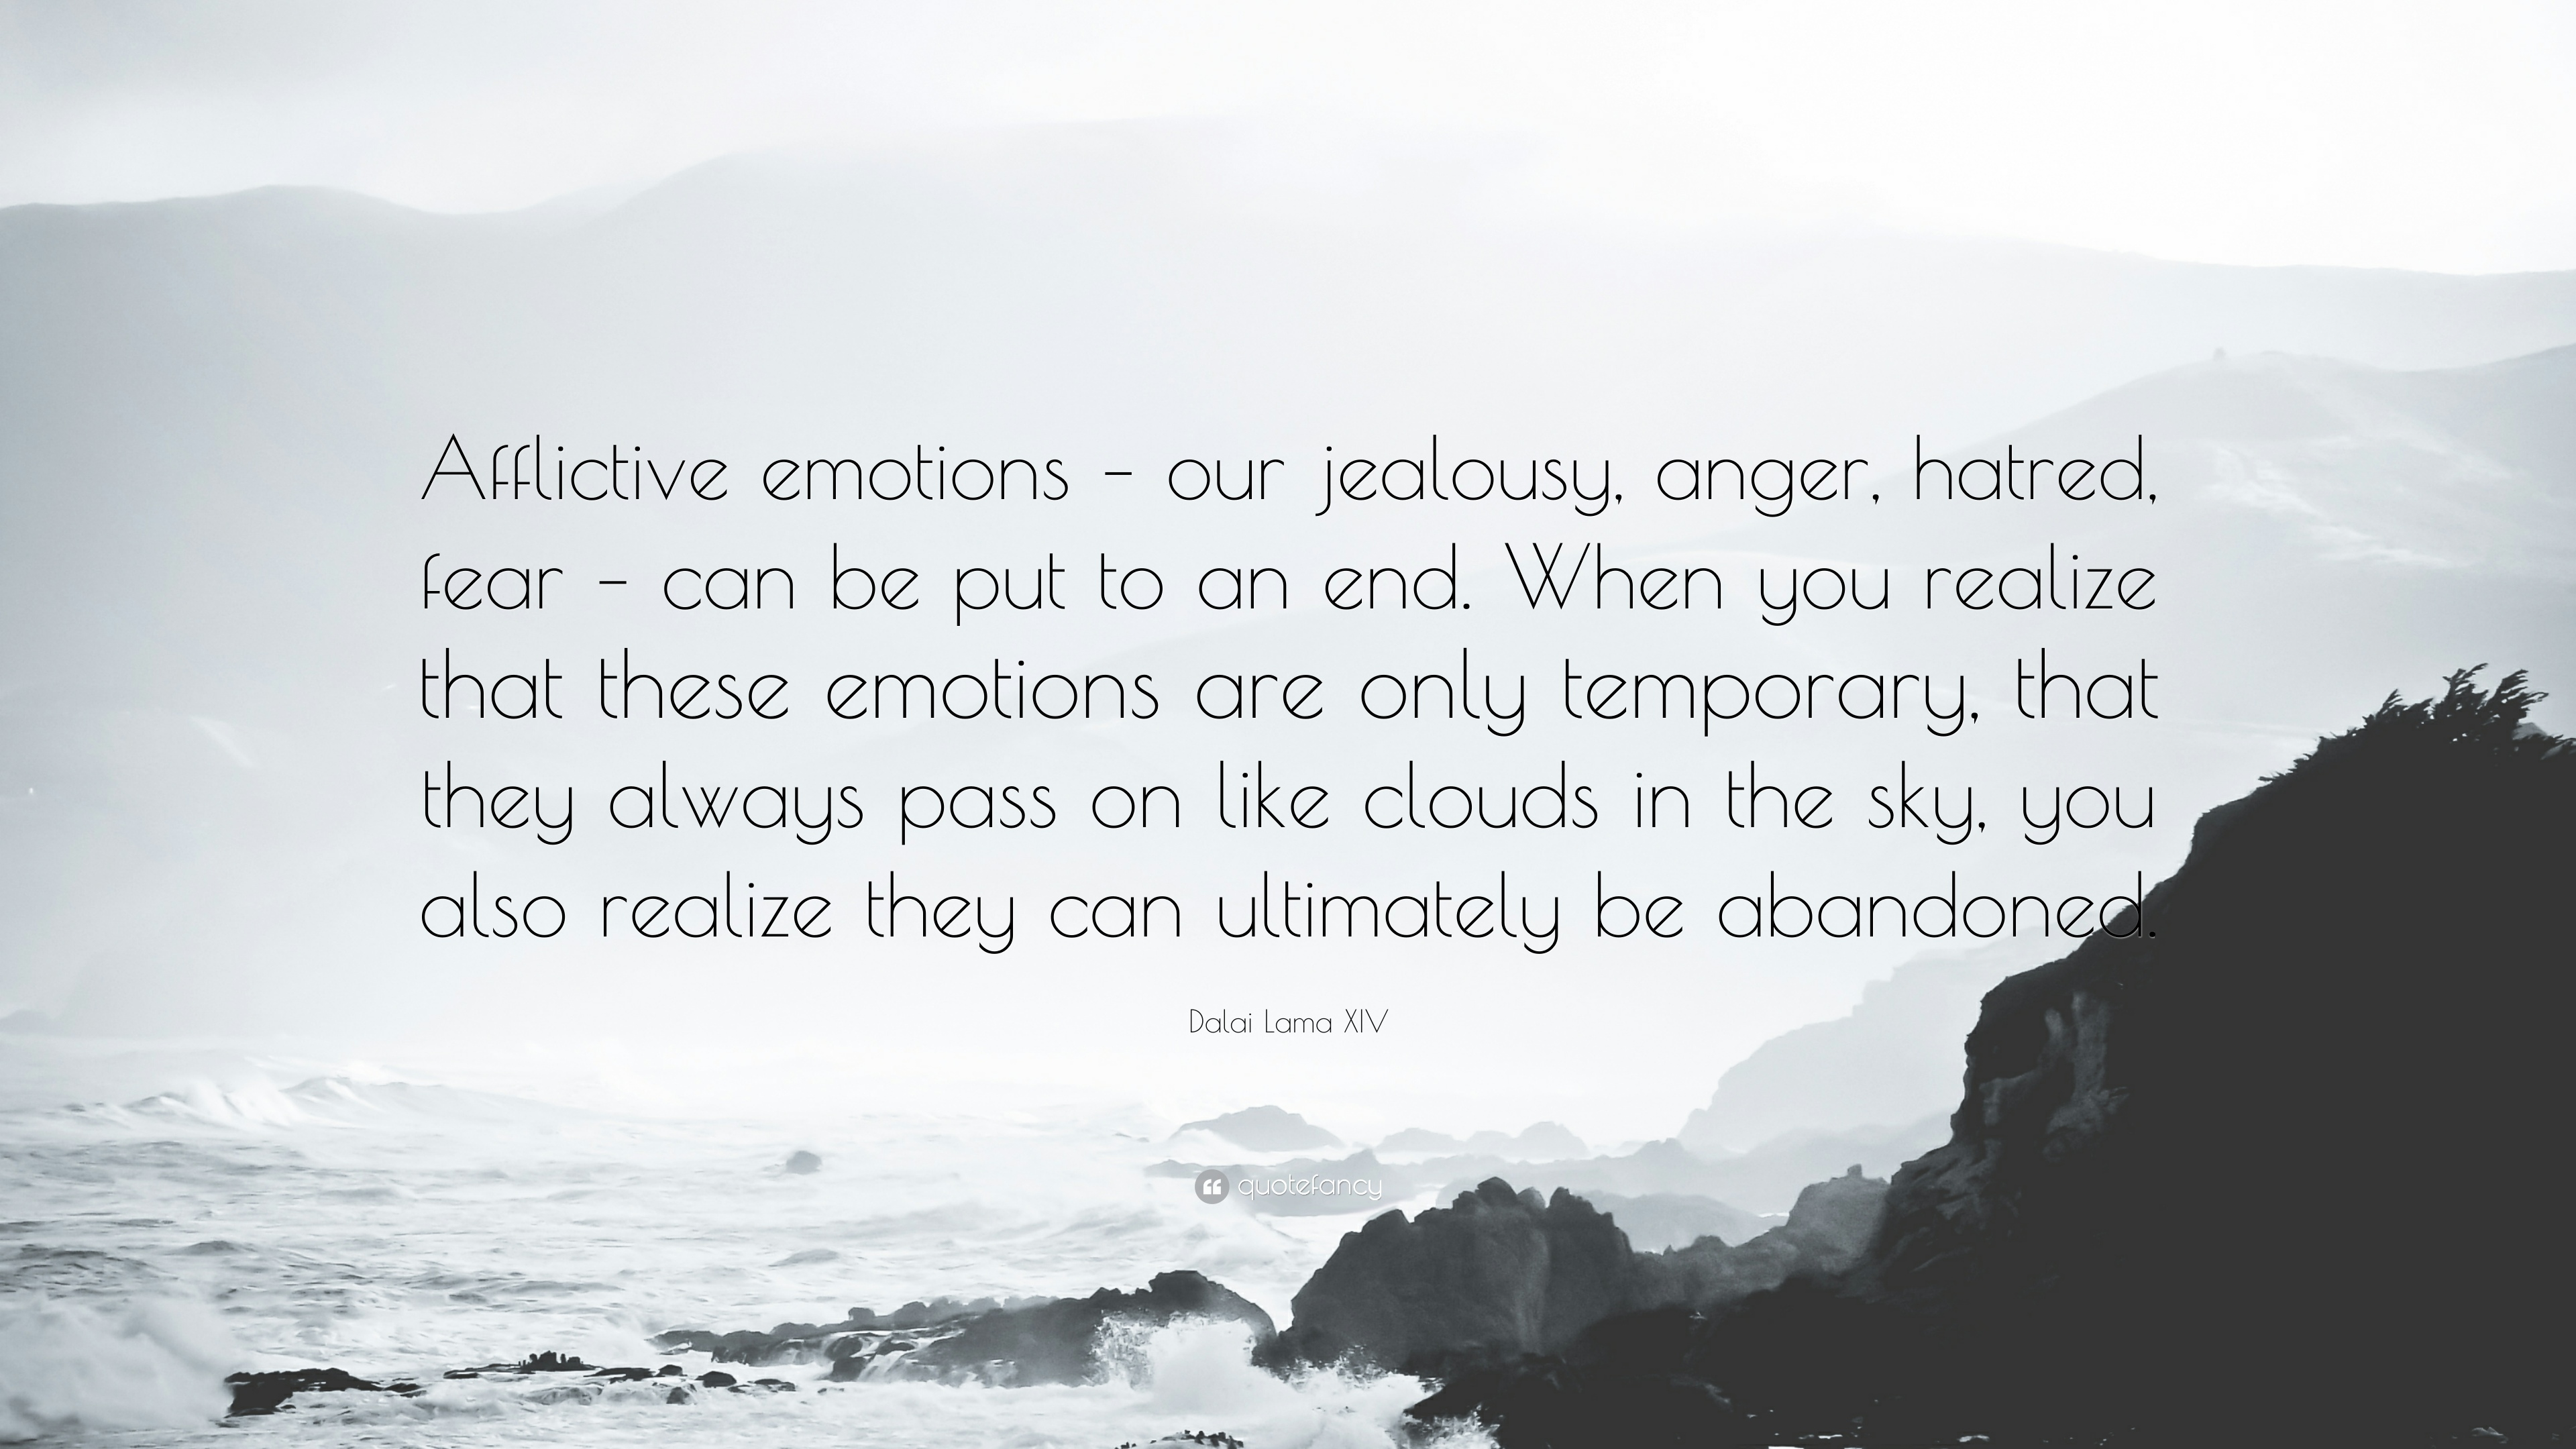 Dalai Lama Xiv Quote Afflictive Emotions Our Jealousy Anger Hatred Fear Can Be Put To An End When You Realize That These Emotions Are 7 Wallpapers Quotefancy